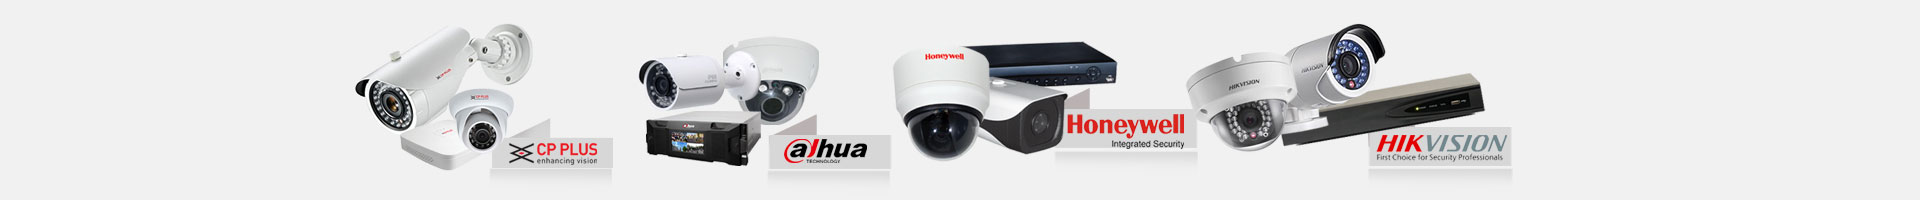 CCTV Security Solution Company - Modi Infotech Services